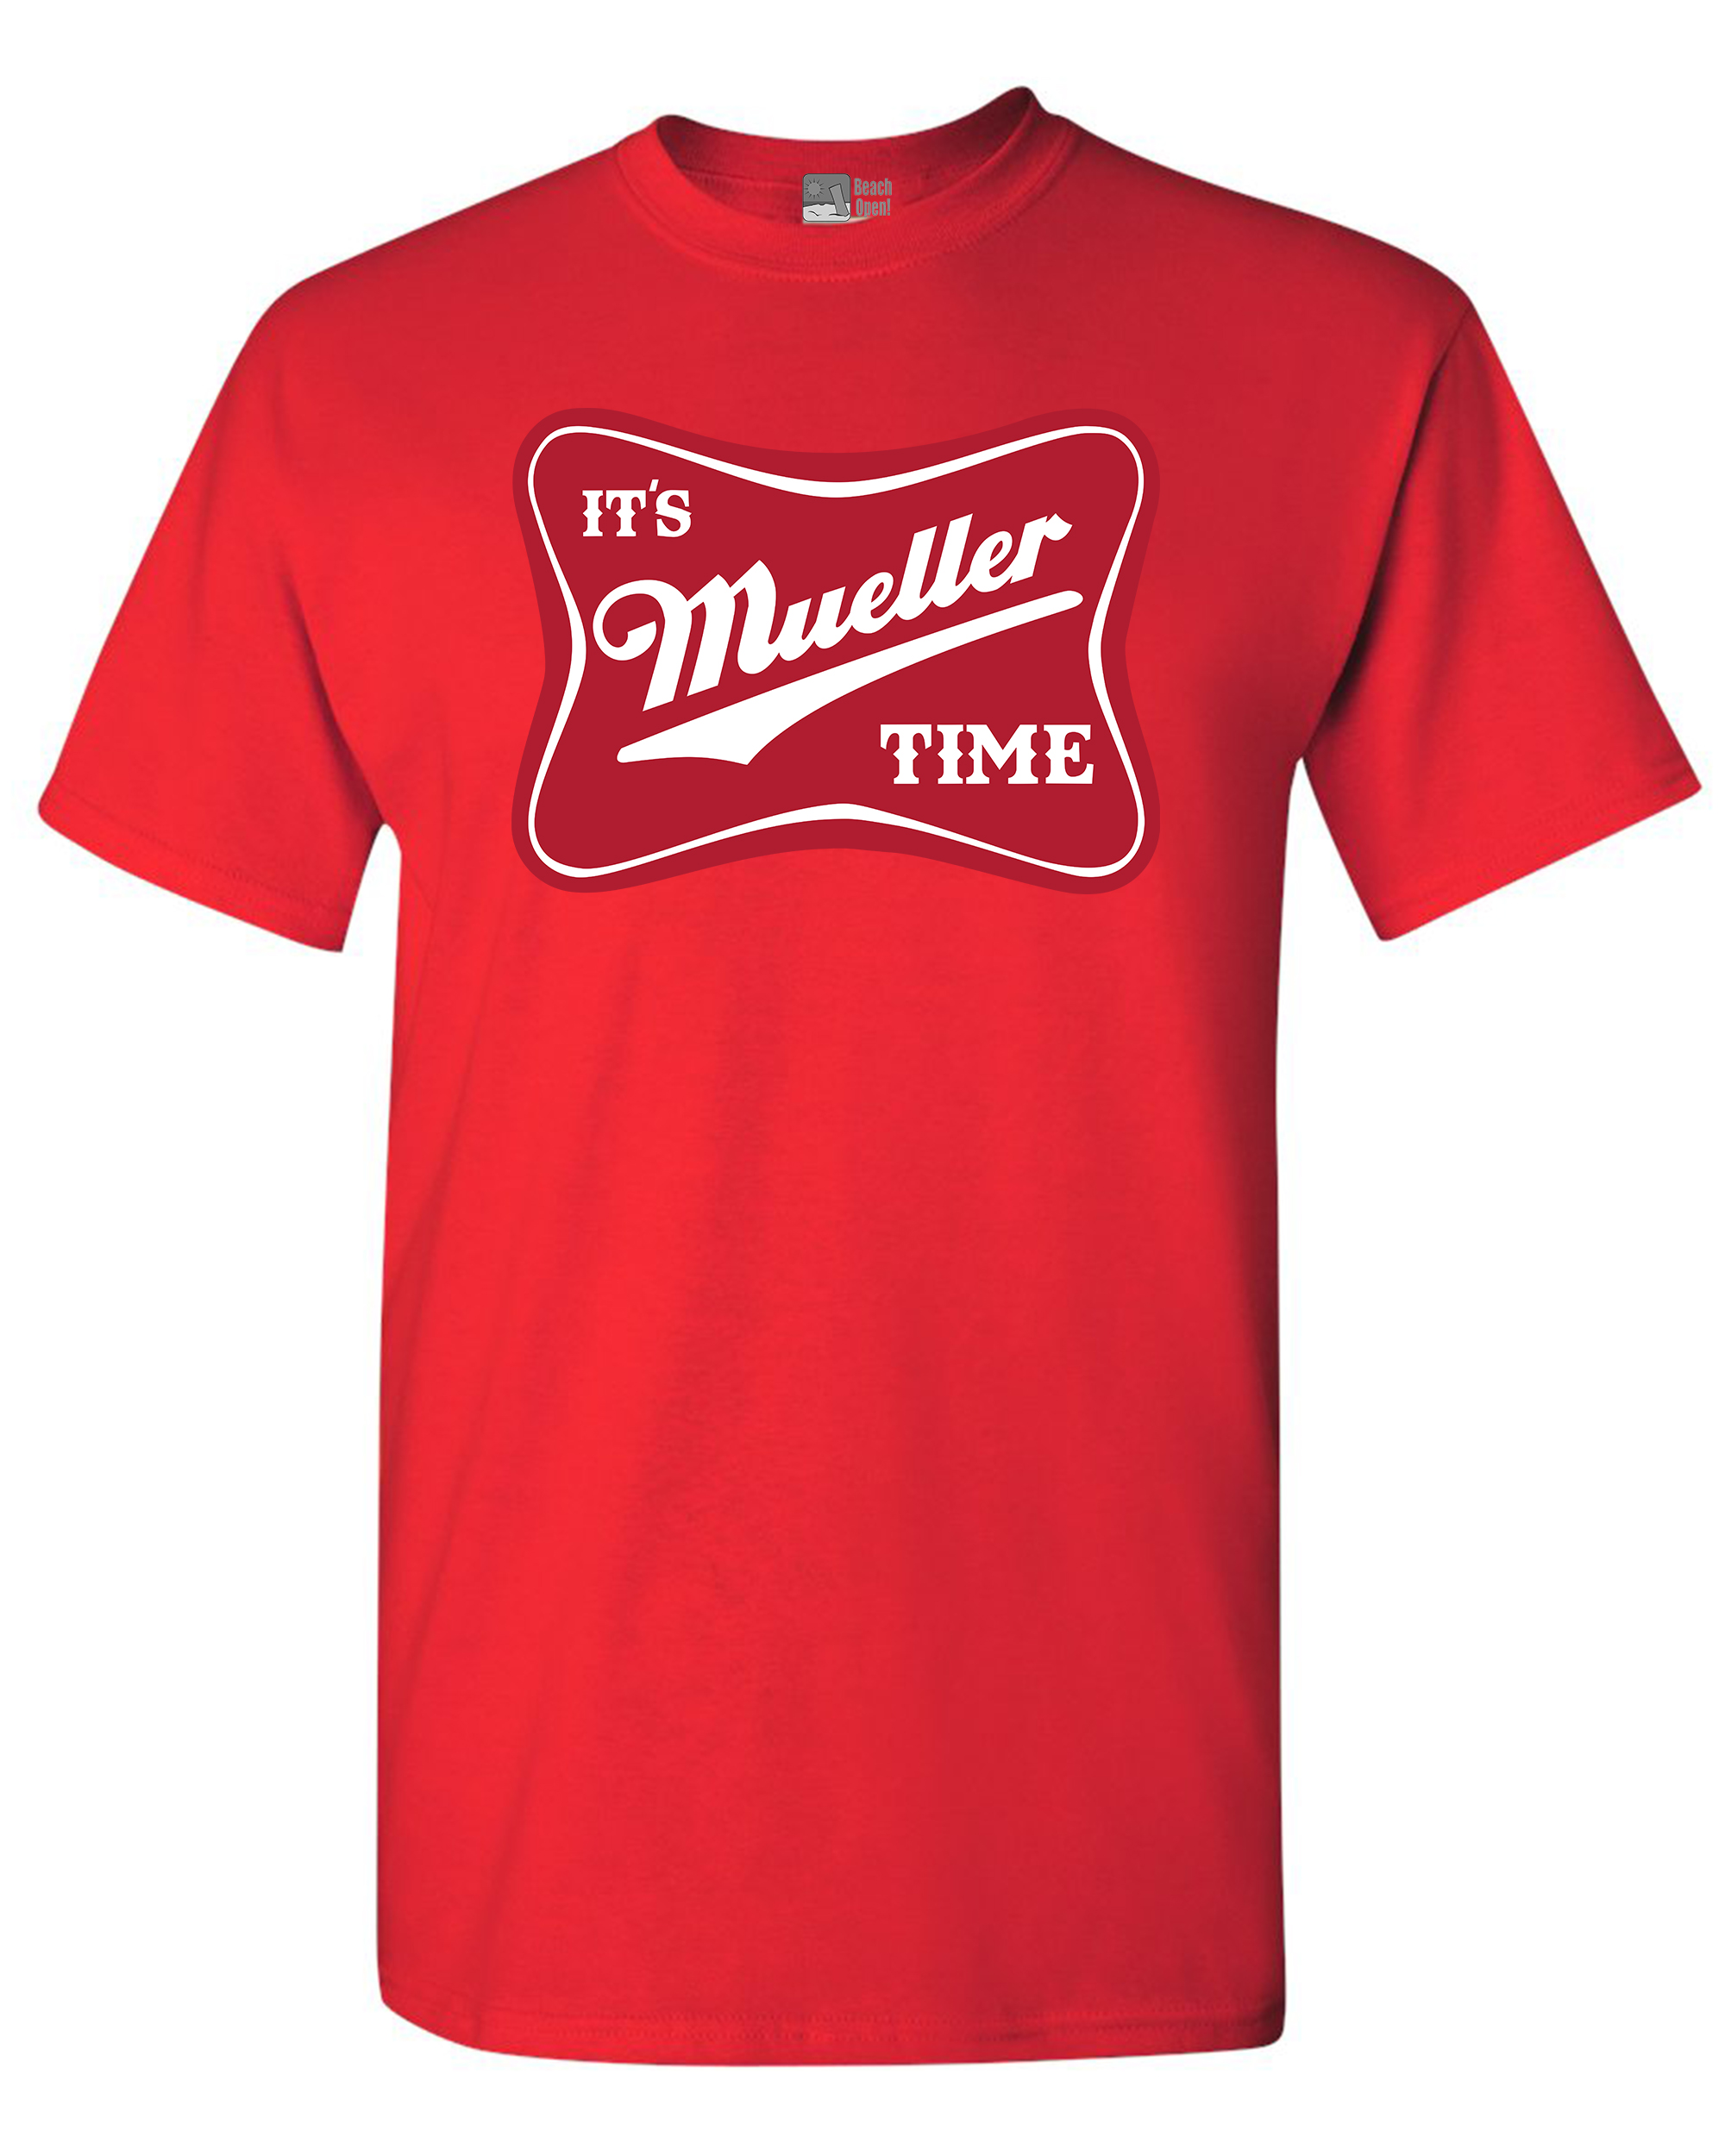 It's Robert Mueller Time USA Support Political DT Adult T-Shirt Tee